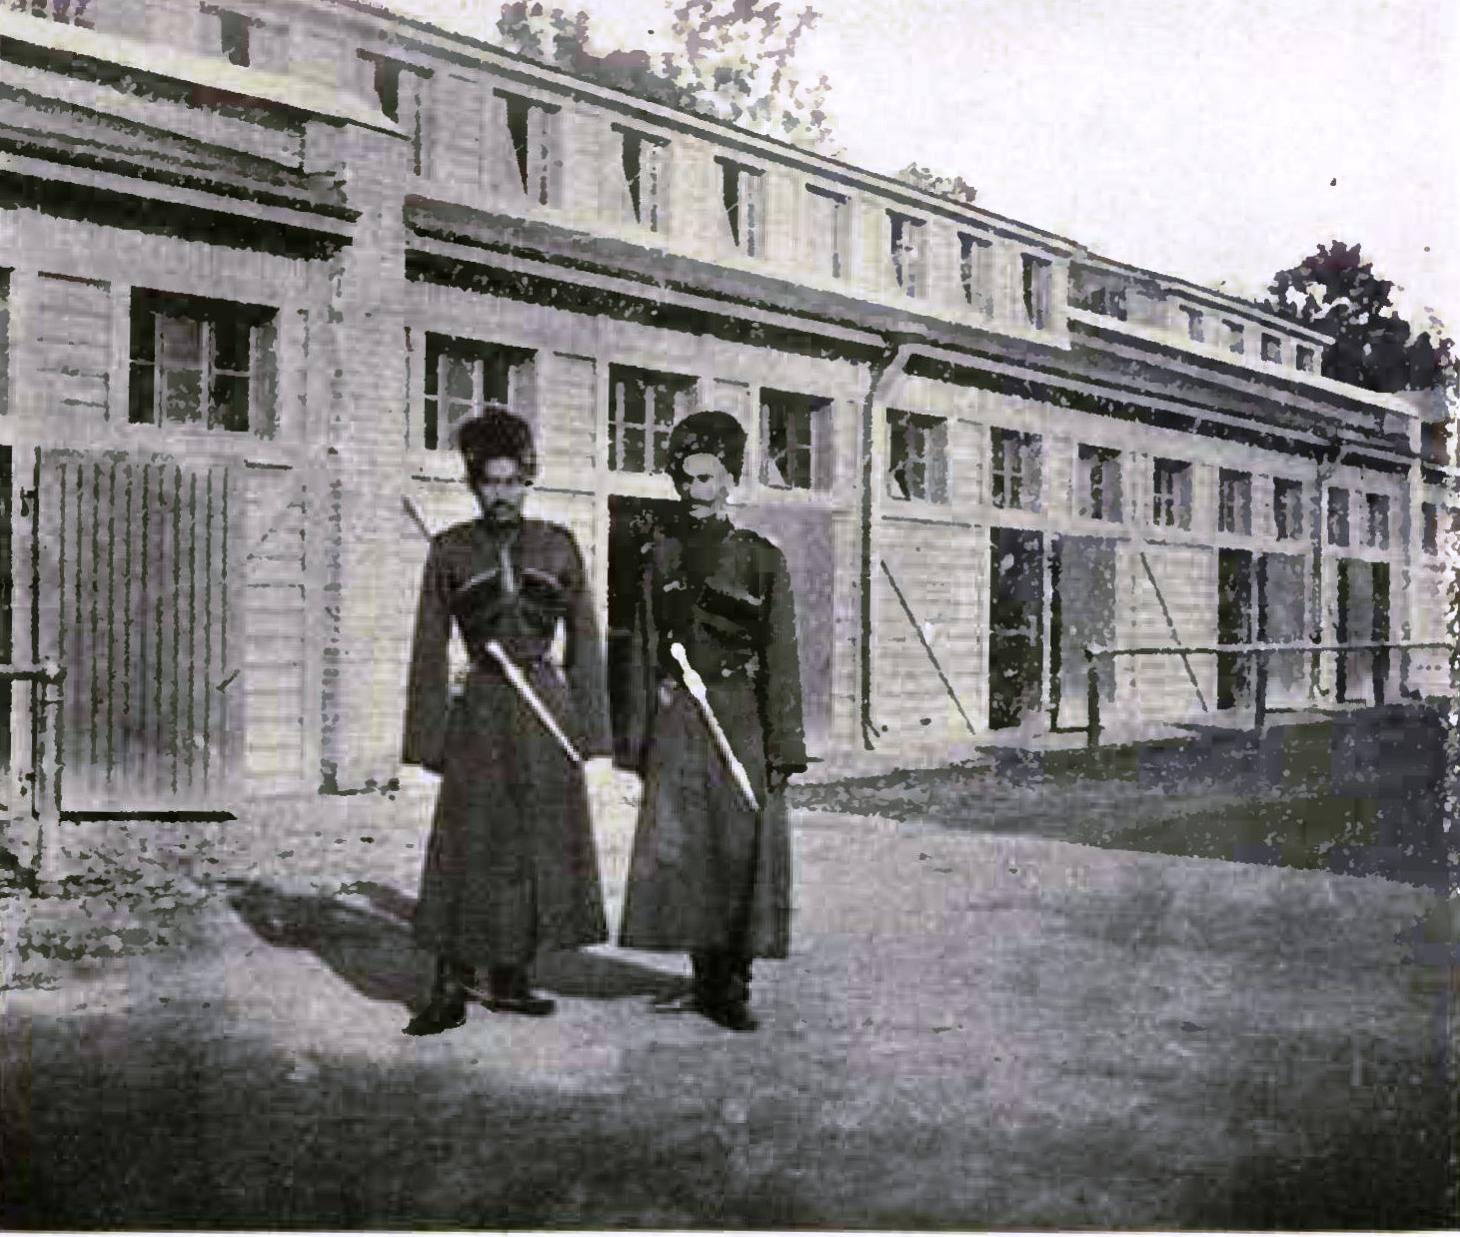 File:The Barracks at Peterhof, two cossacks of the escort.jpg